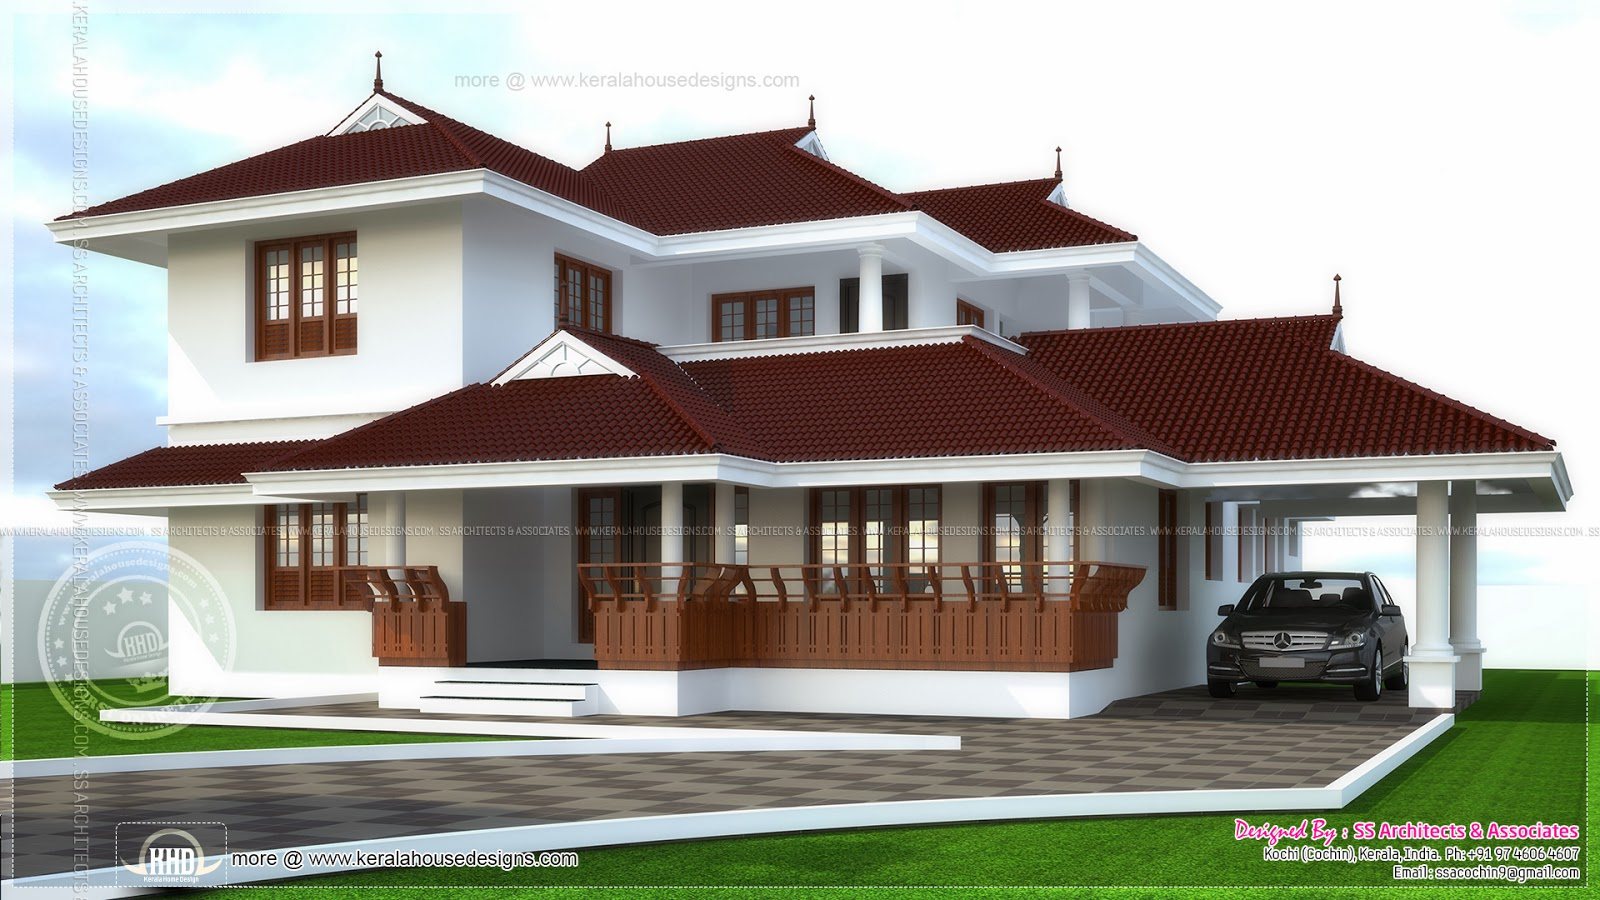 4 bedroom traditional kerala house design for Kerala traditional home plans with photos